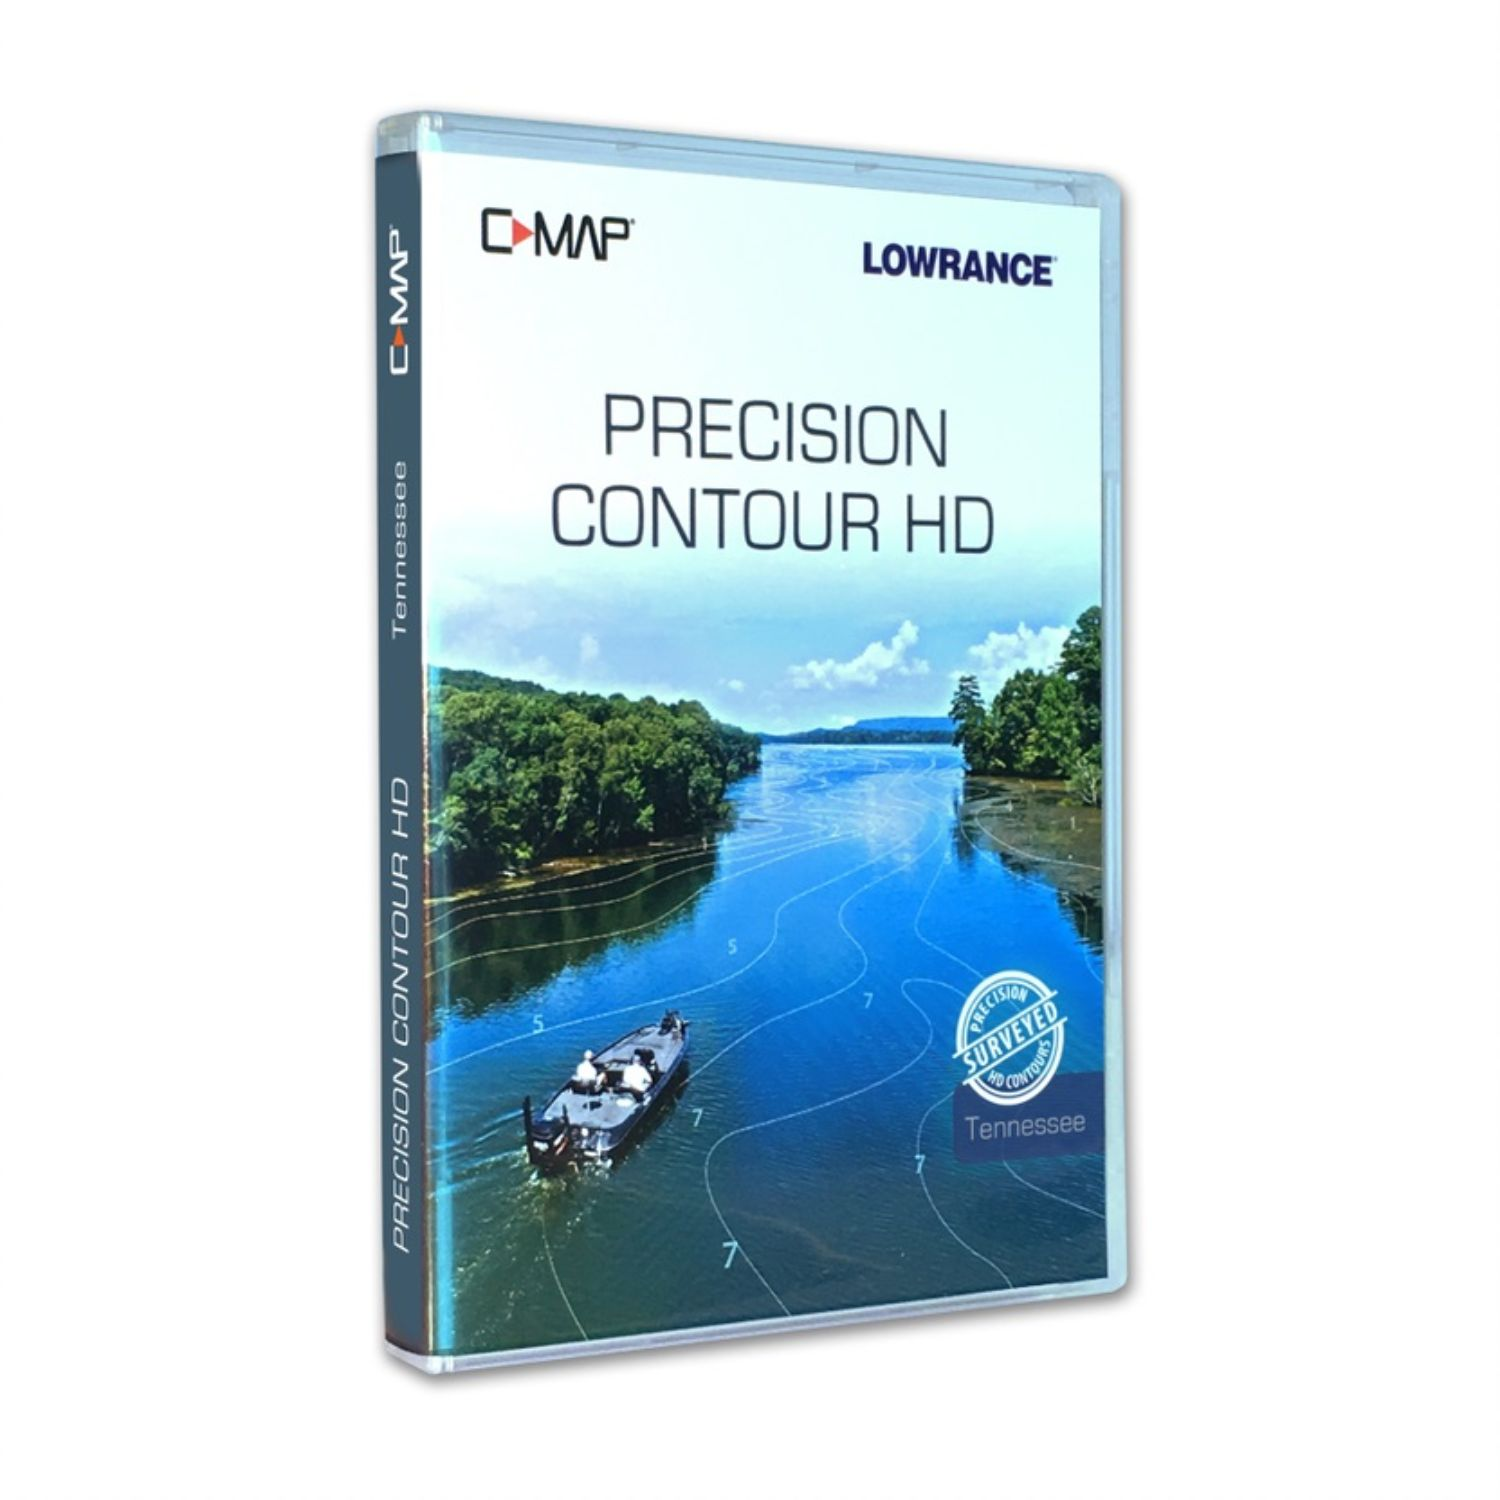 Lowrance C-MAP Precision Contour HD Tennessee